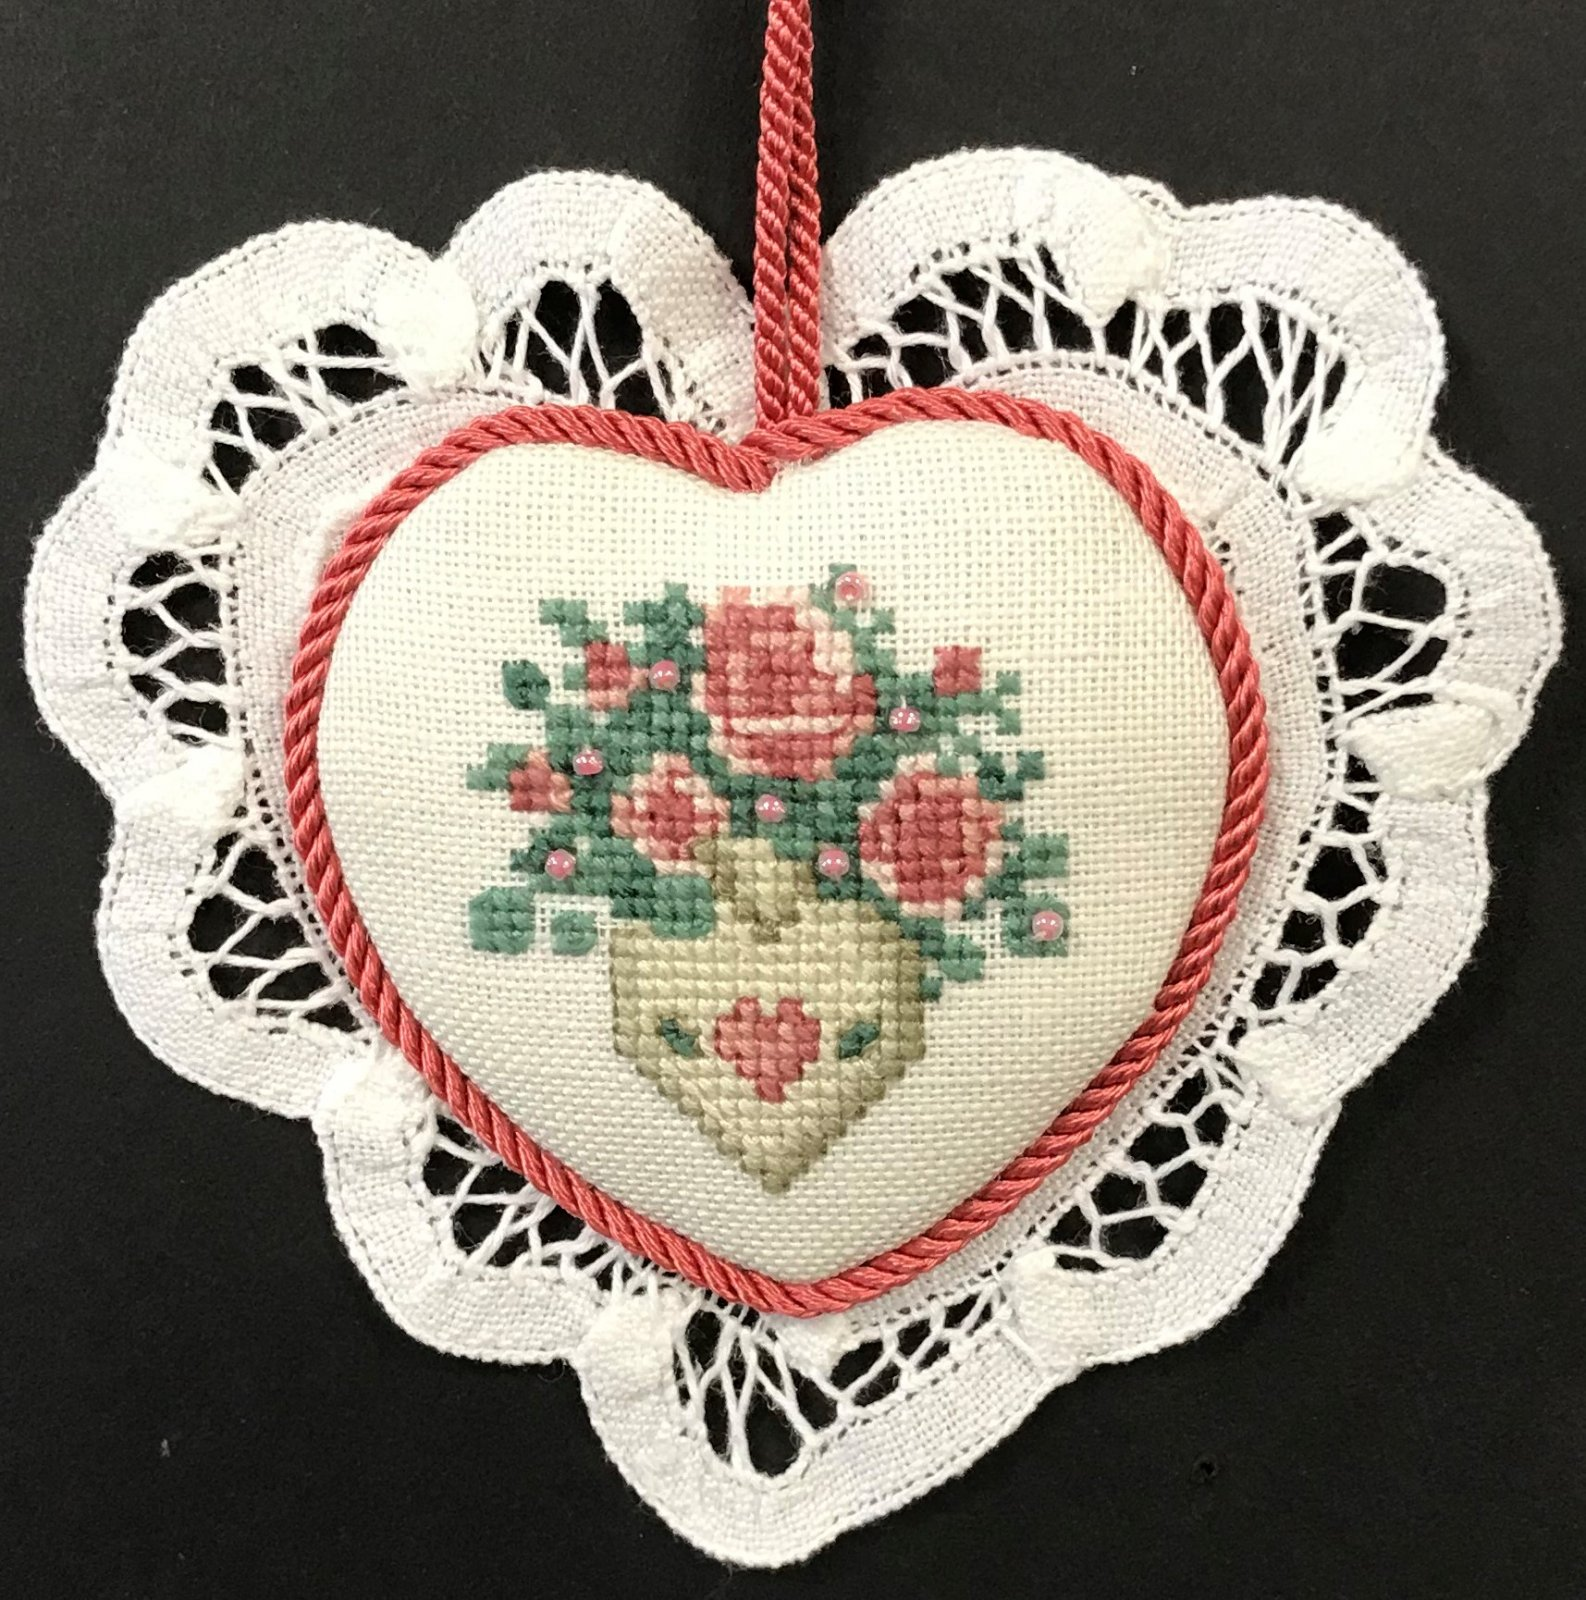 Heart Applique Ornament - stitched by Barbara S.